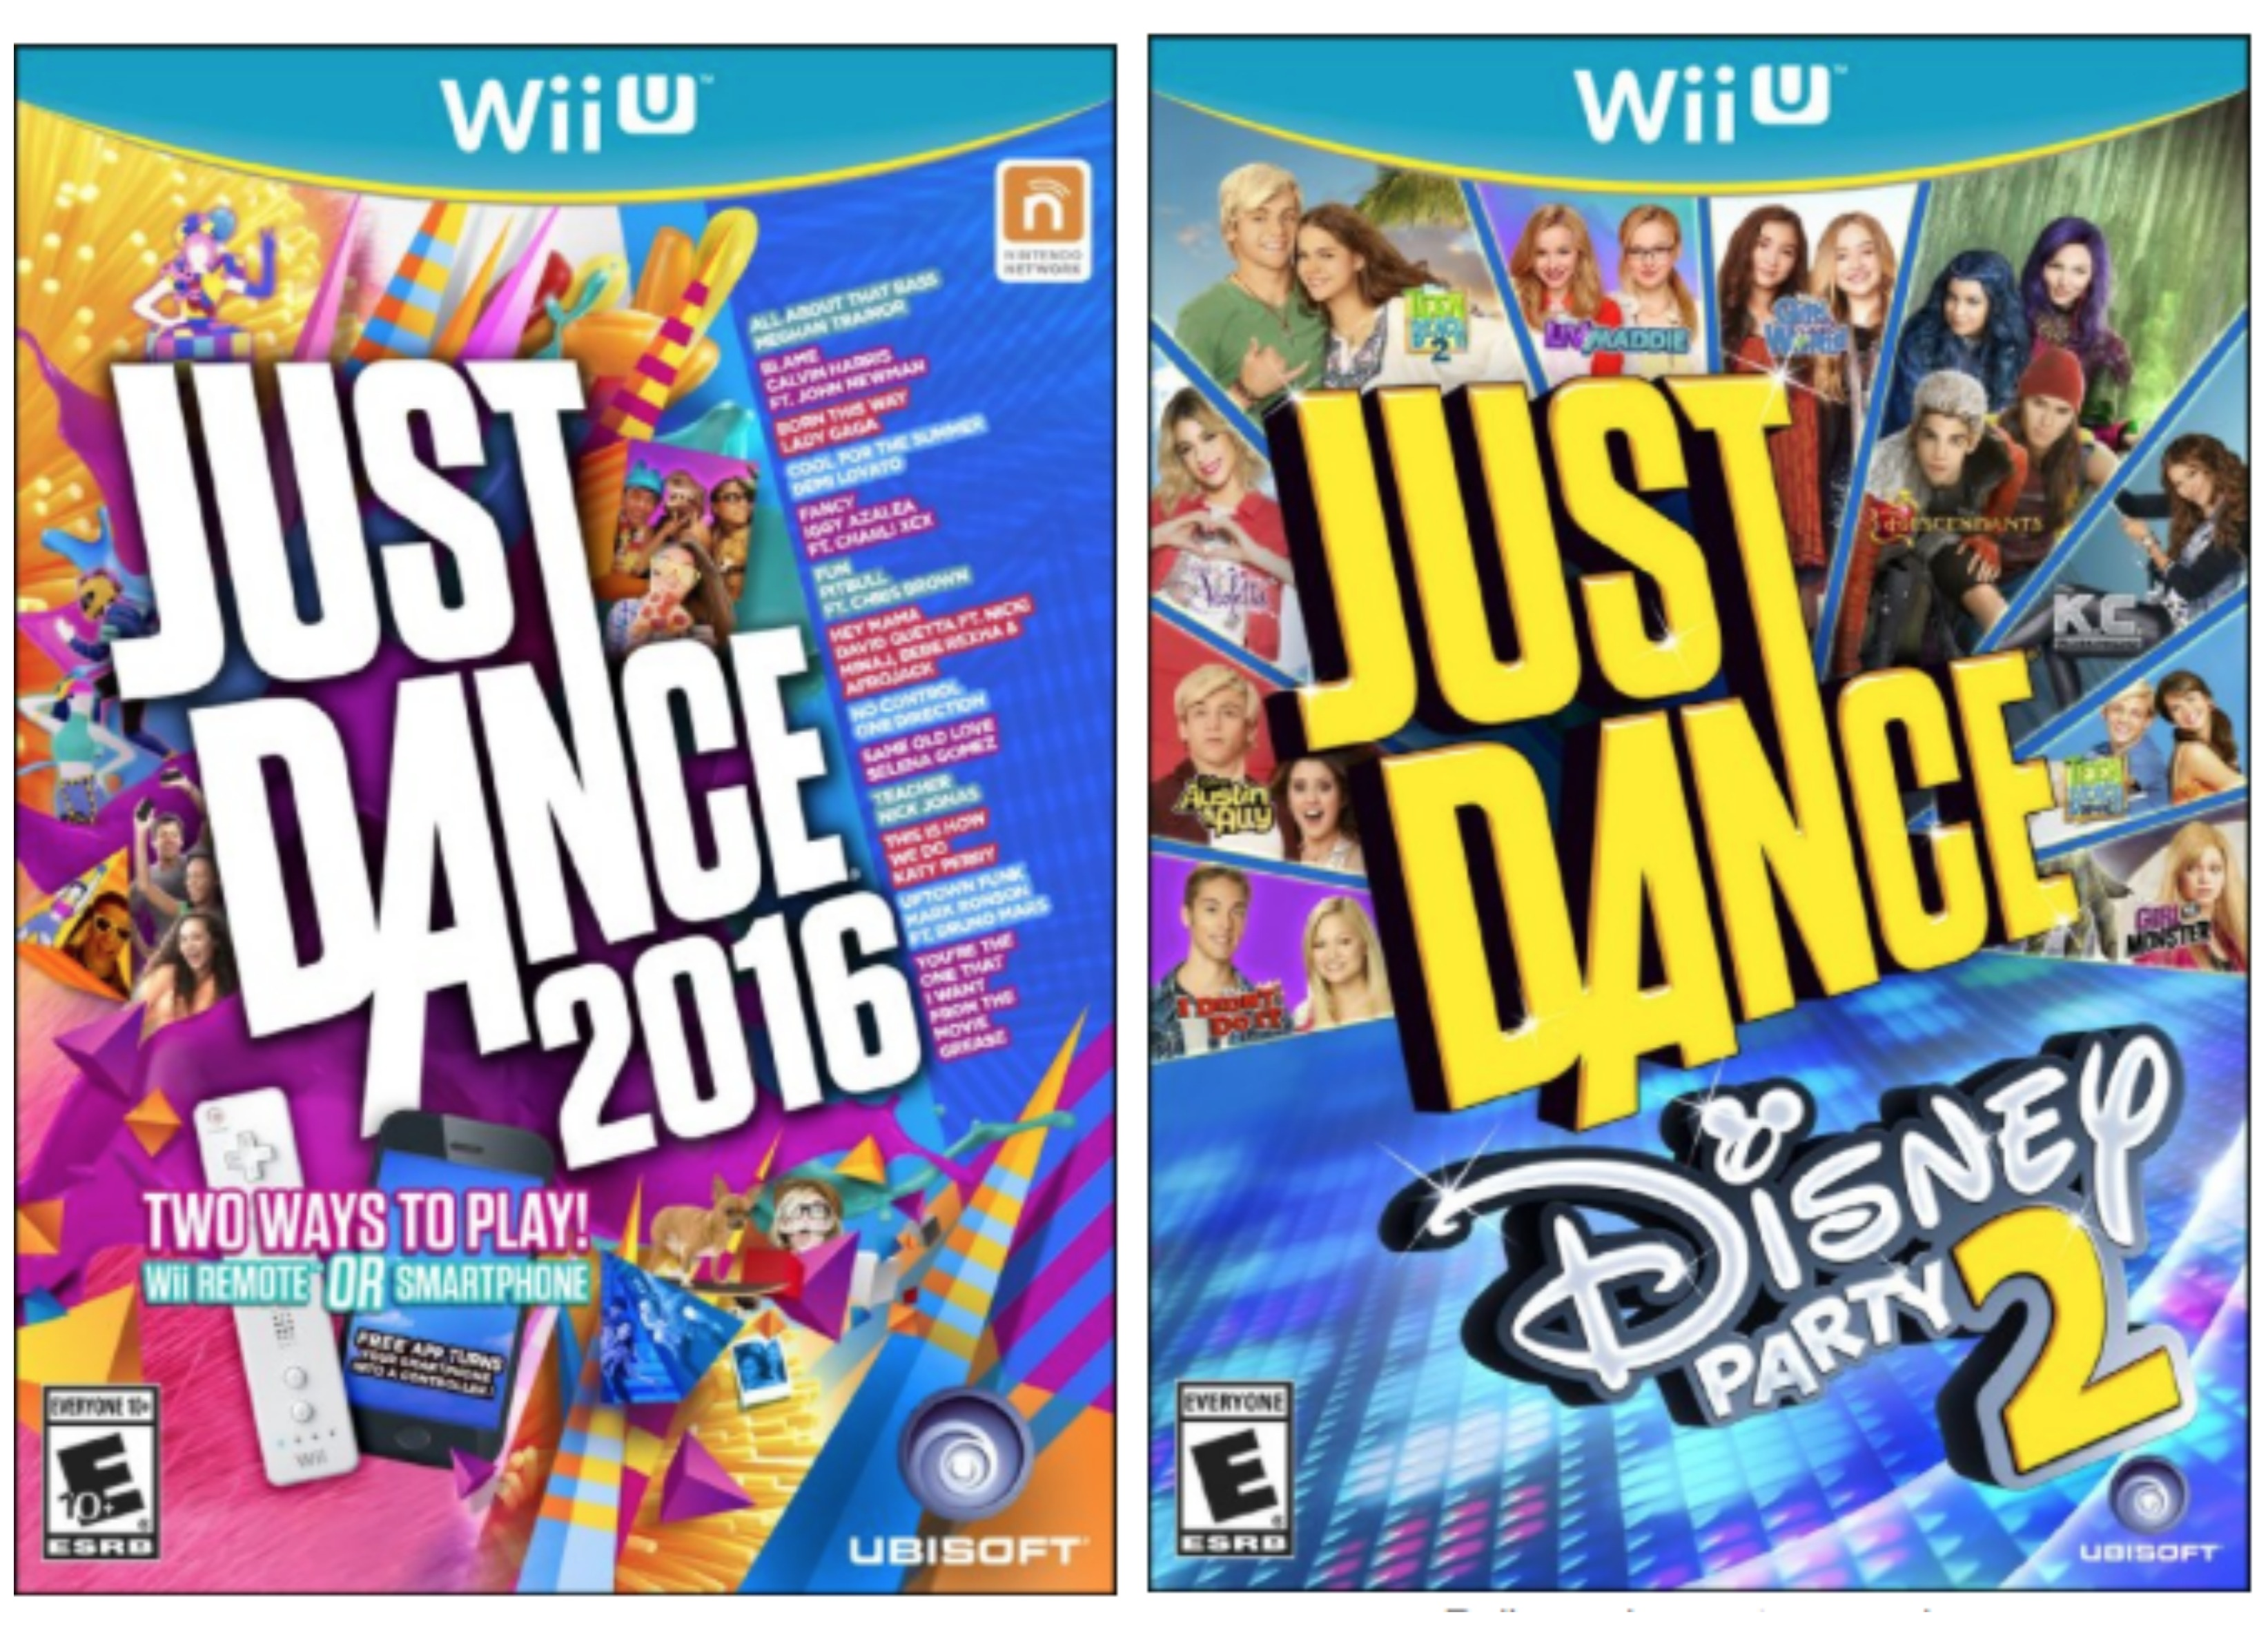 218743babf108c Take up to 50% on Just Dance 2016   Just Dance Disney Party 2 ...